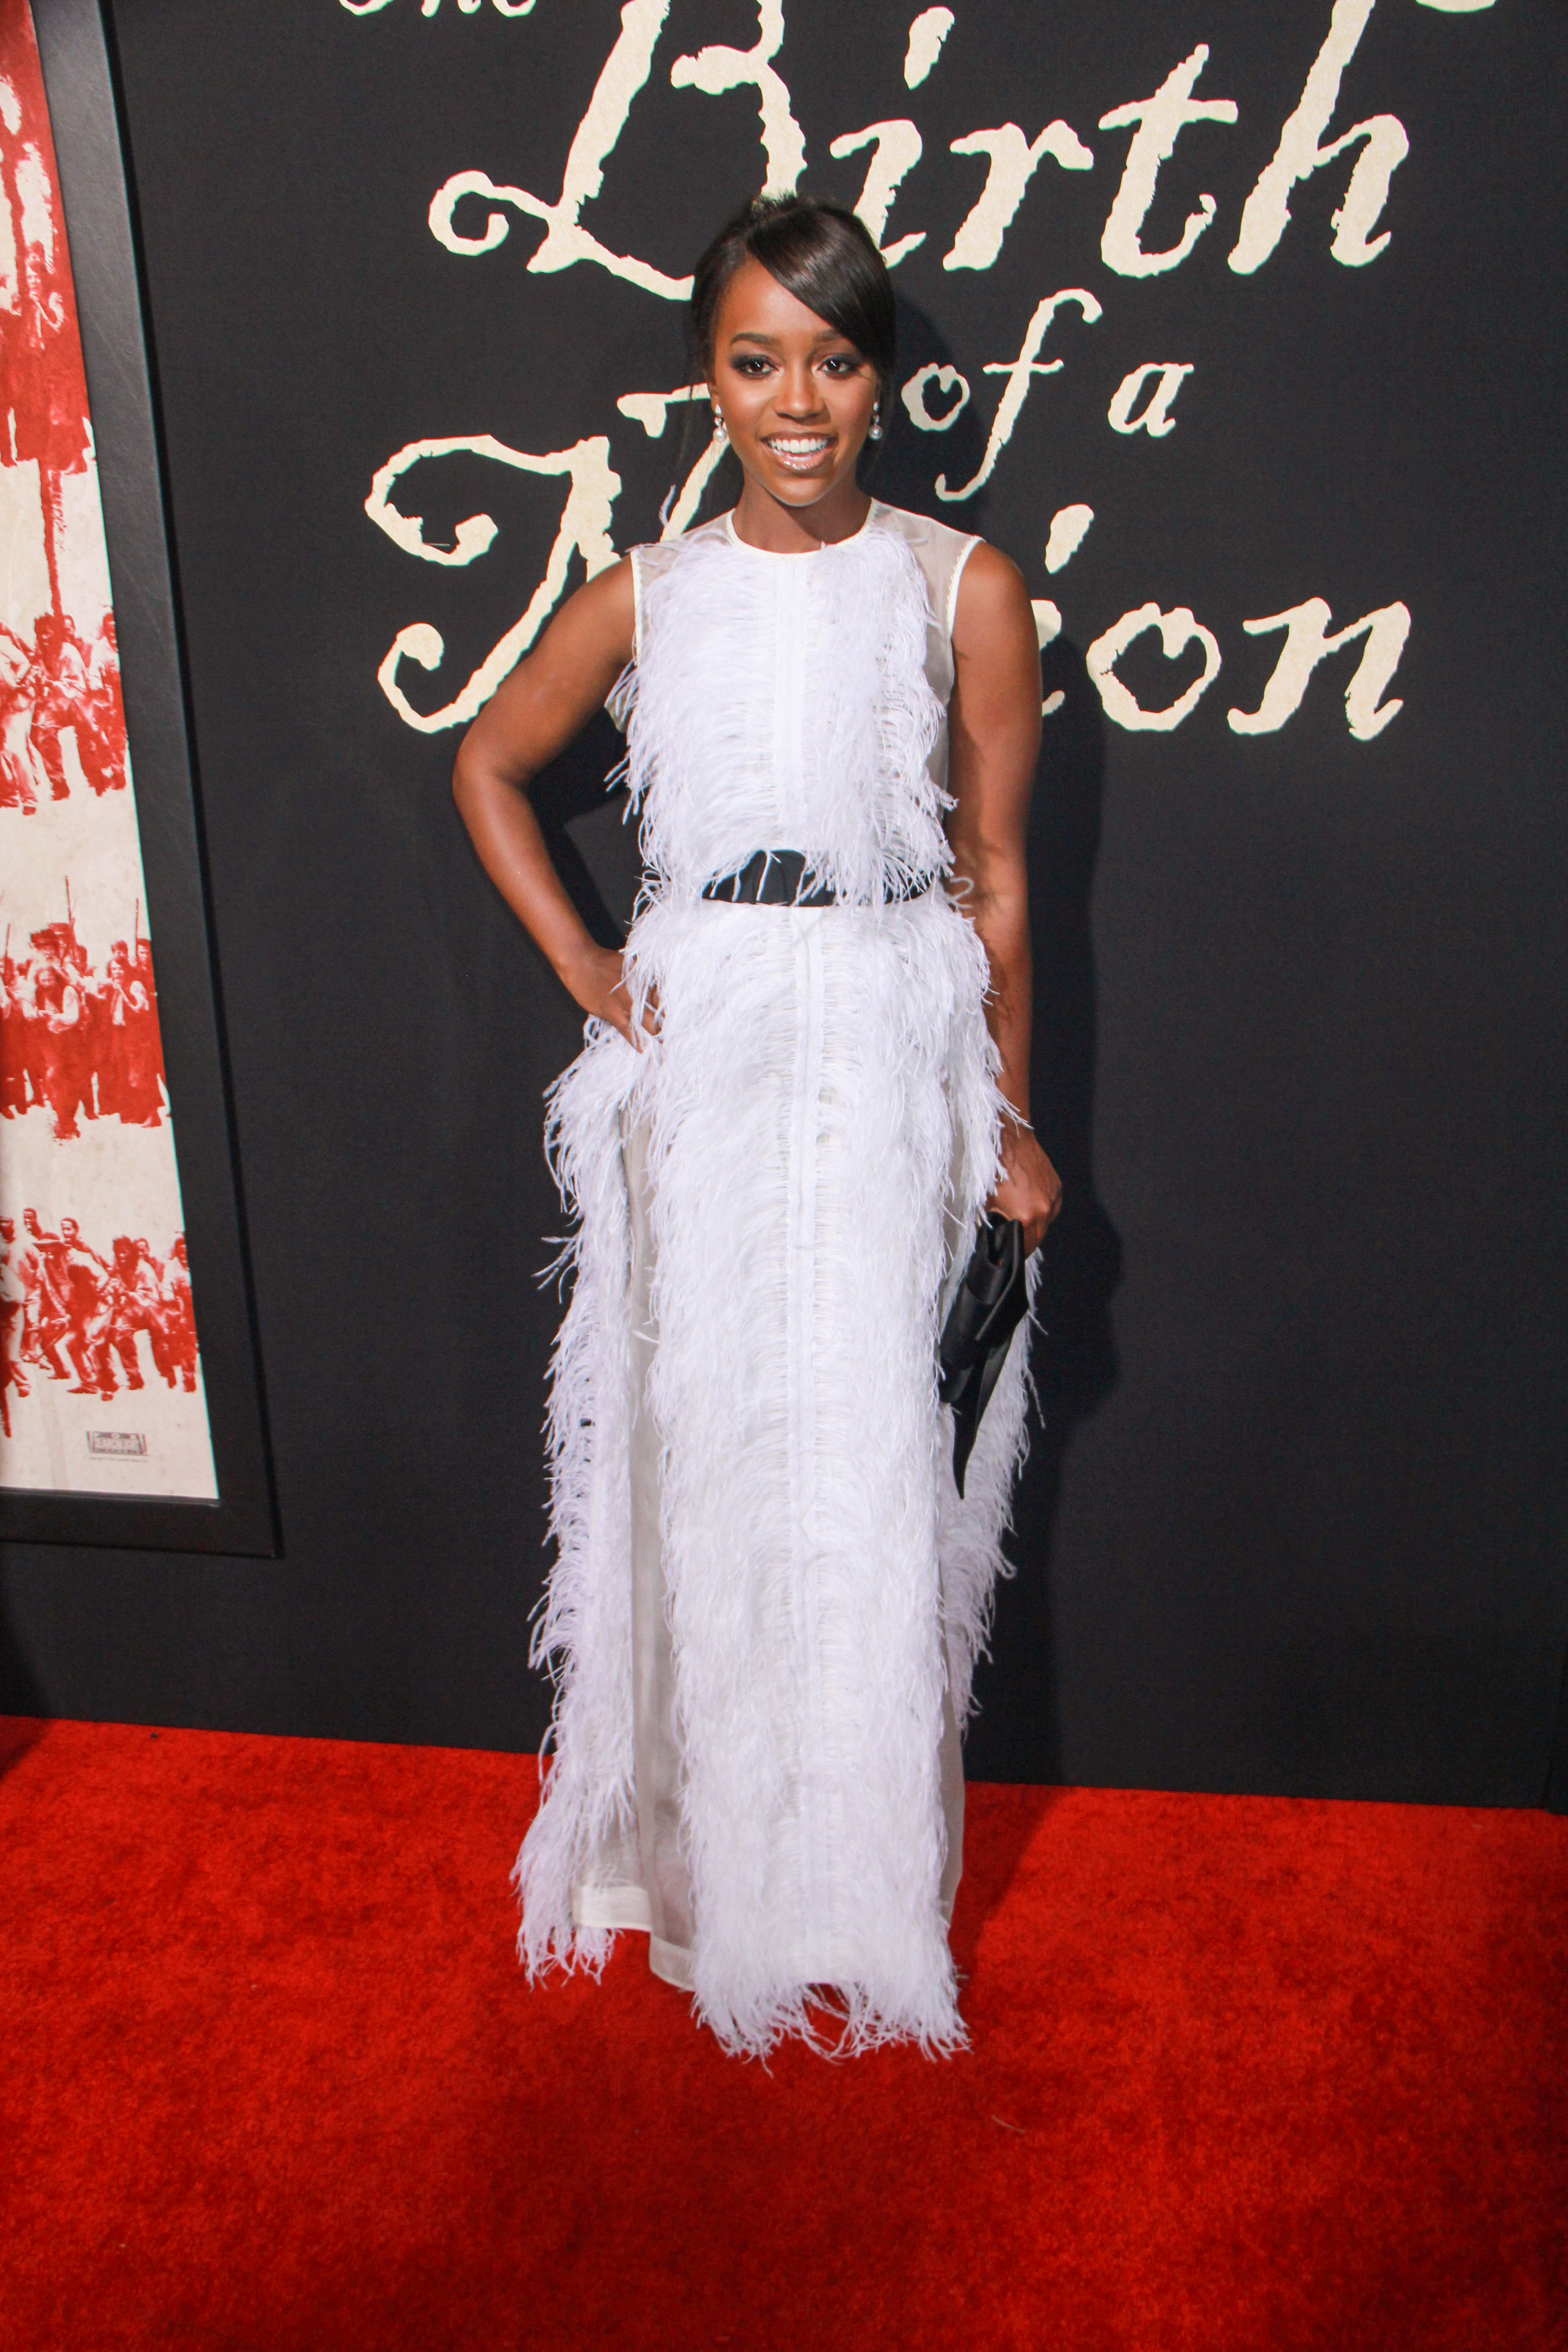 """09/21/2016 - Aja Naomi King - """"The Birth of a Nation"""" Los Angeles Premiere - Inside Arrivals - ArcLight Cinemas Cinerama Dome, 6360 Sunset Boulevard - Los Angeles, CA, USA - Keywords: Vertical, Fox Searchlight Pictures, Biography, Drama, Film Premiere, Movie Premiere, Person, People, Celebrity, Celebrities, Portrait, Photography, Red Carpet Event, Arts Culture and Entertainment, Attending, Hollywood, California Orientation: Portrait Face Count: 1 - False - Photo Credit: Izumi Hasegawa / PRPhotos.com - Contact (1-866-551-7827) - Portrait Face Count: 1"""